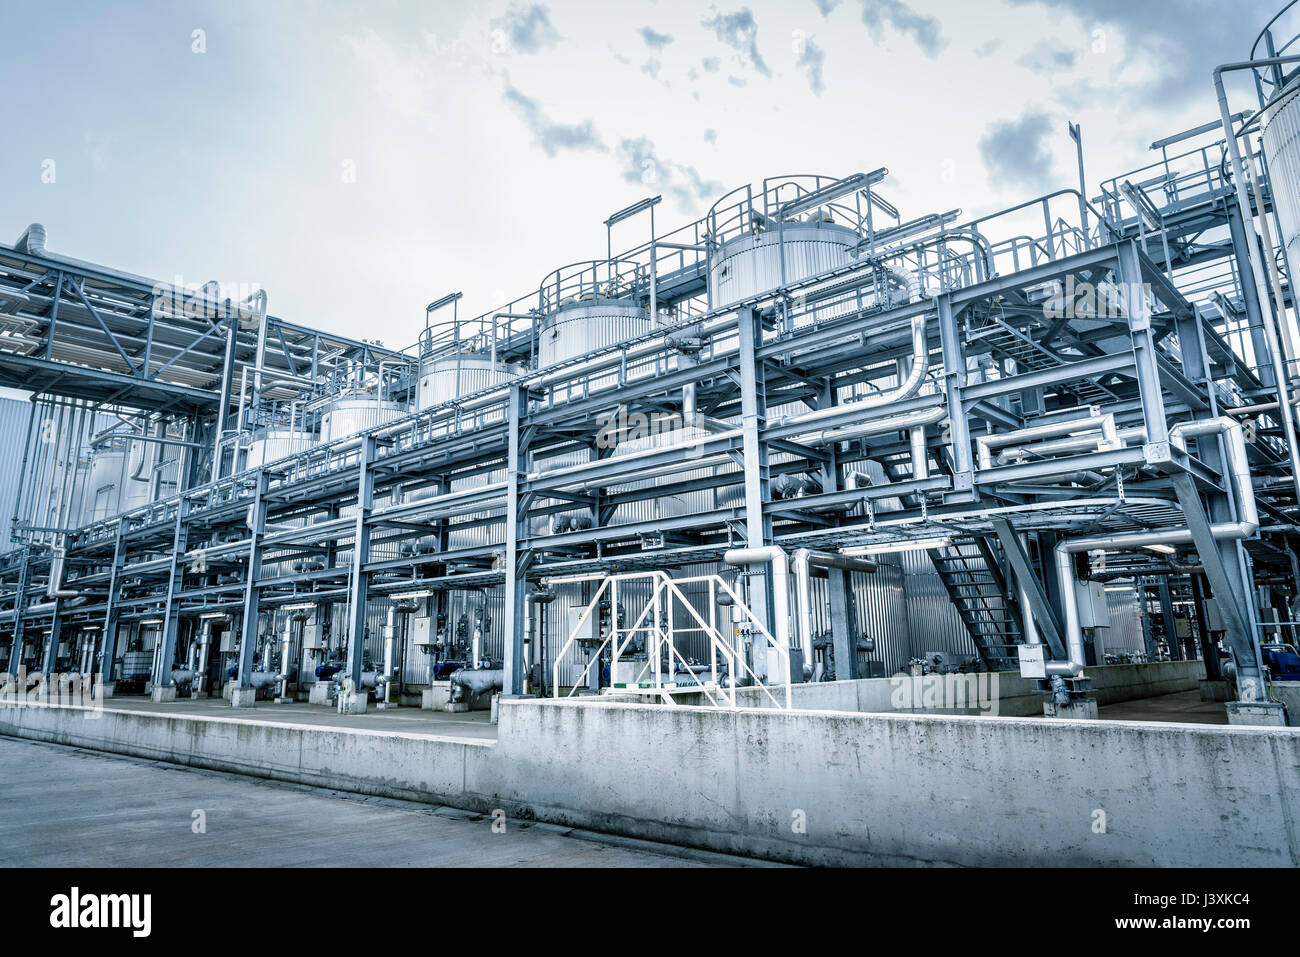 Tanks and pipes in oil blending plant, Antwerp, Belgium, Europe - Stock Image